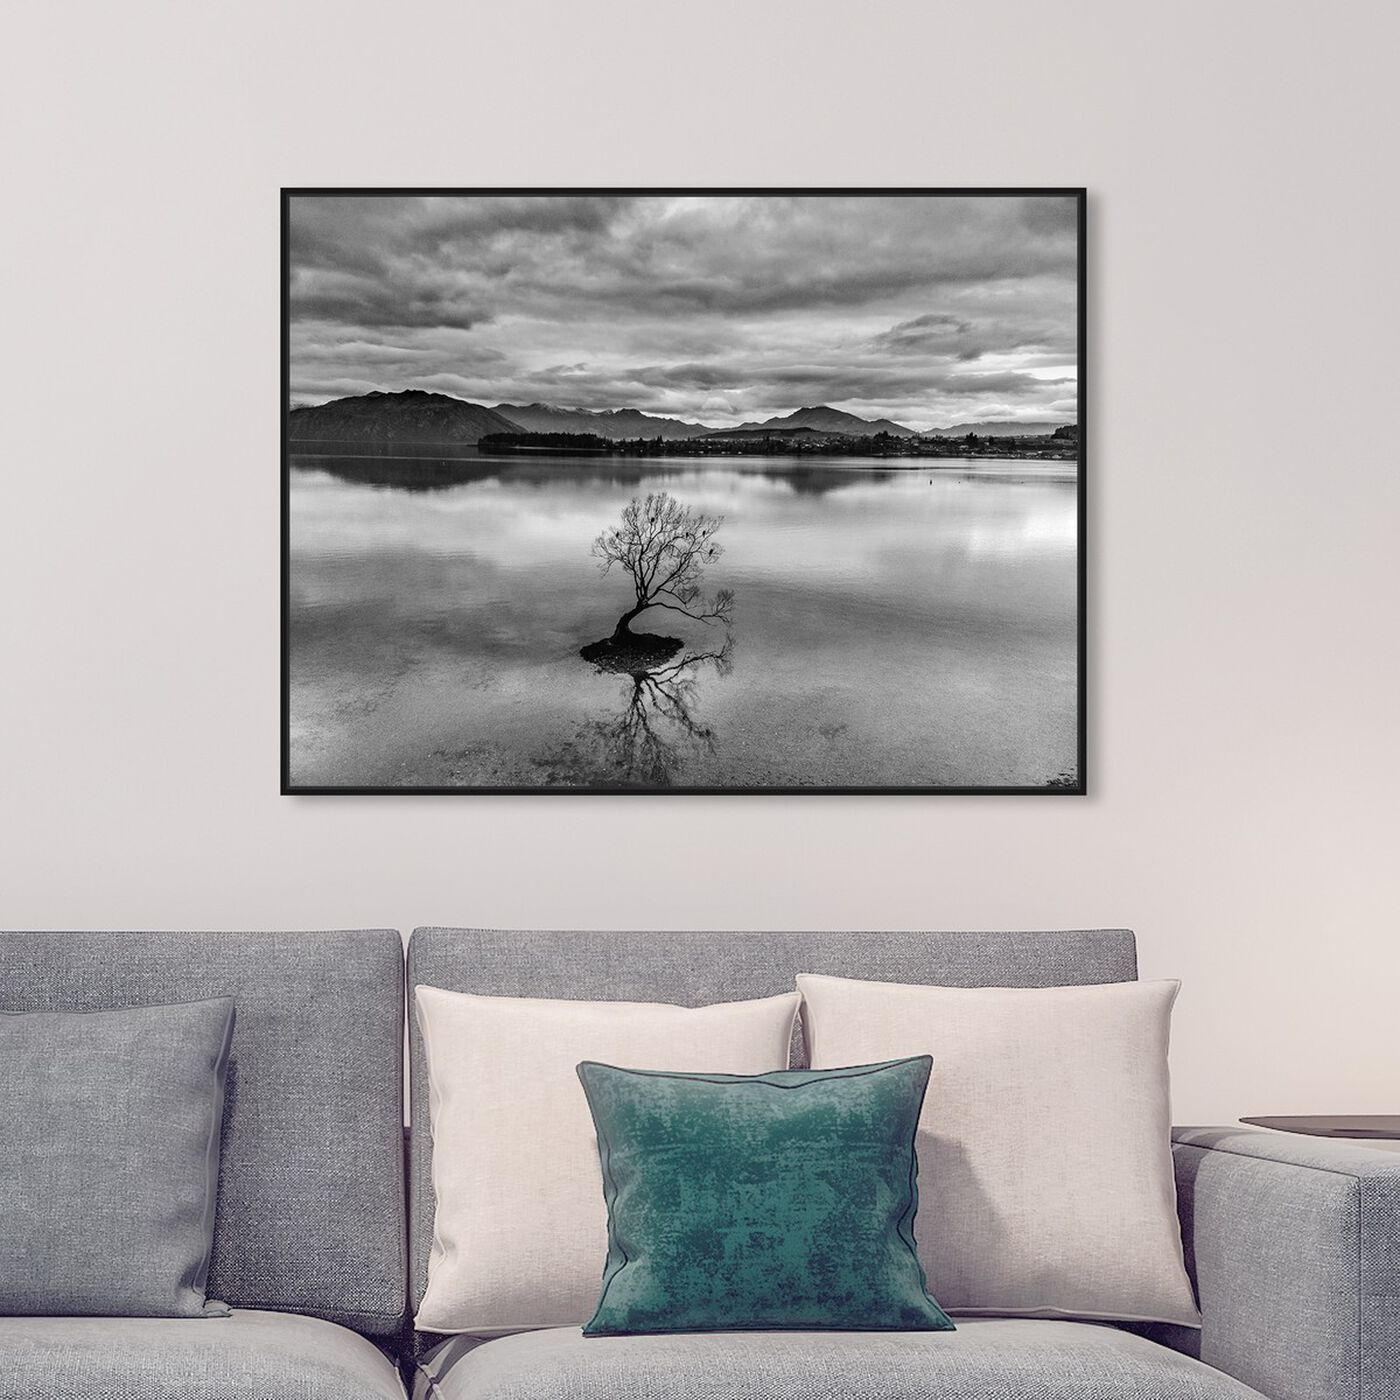 Hanging view of Curro Cardenal - Unbounded Love Noir featuring nature and landscape and nature art.